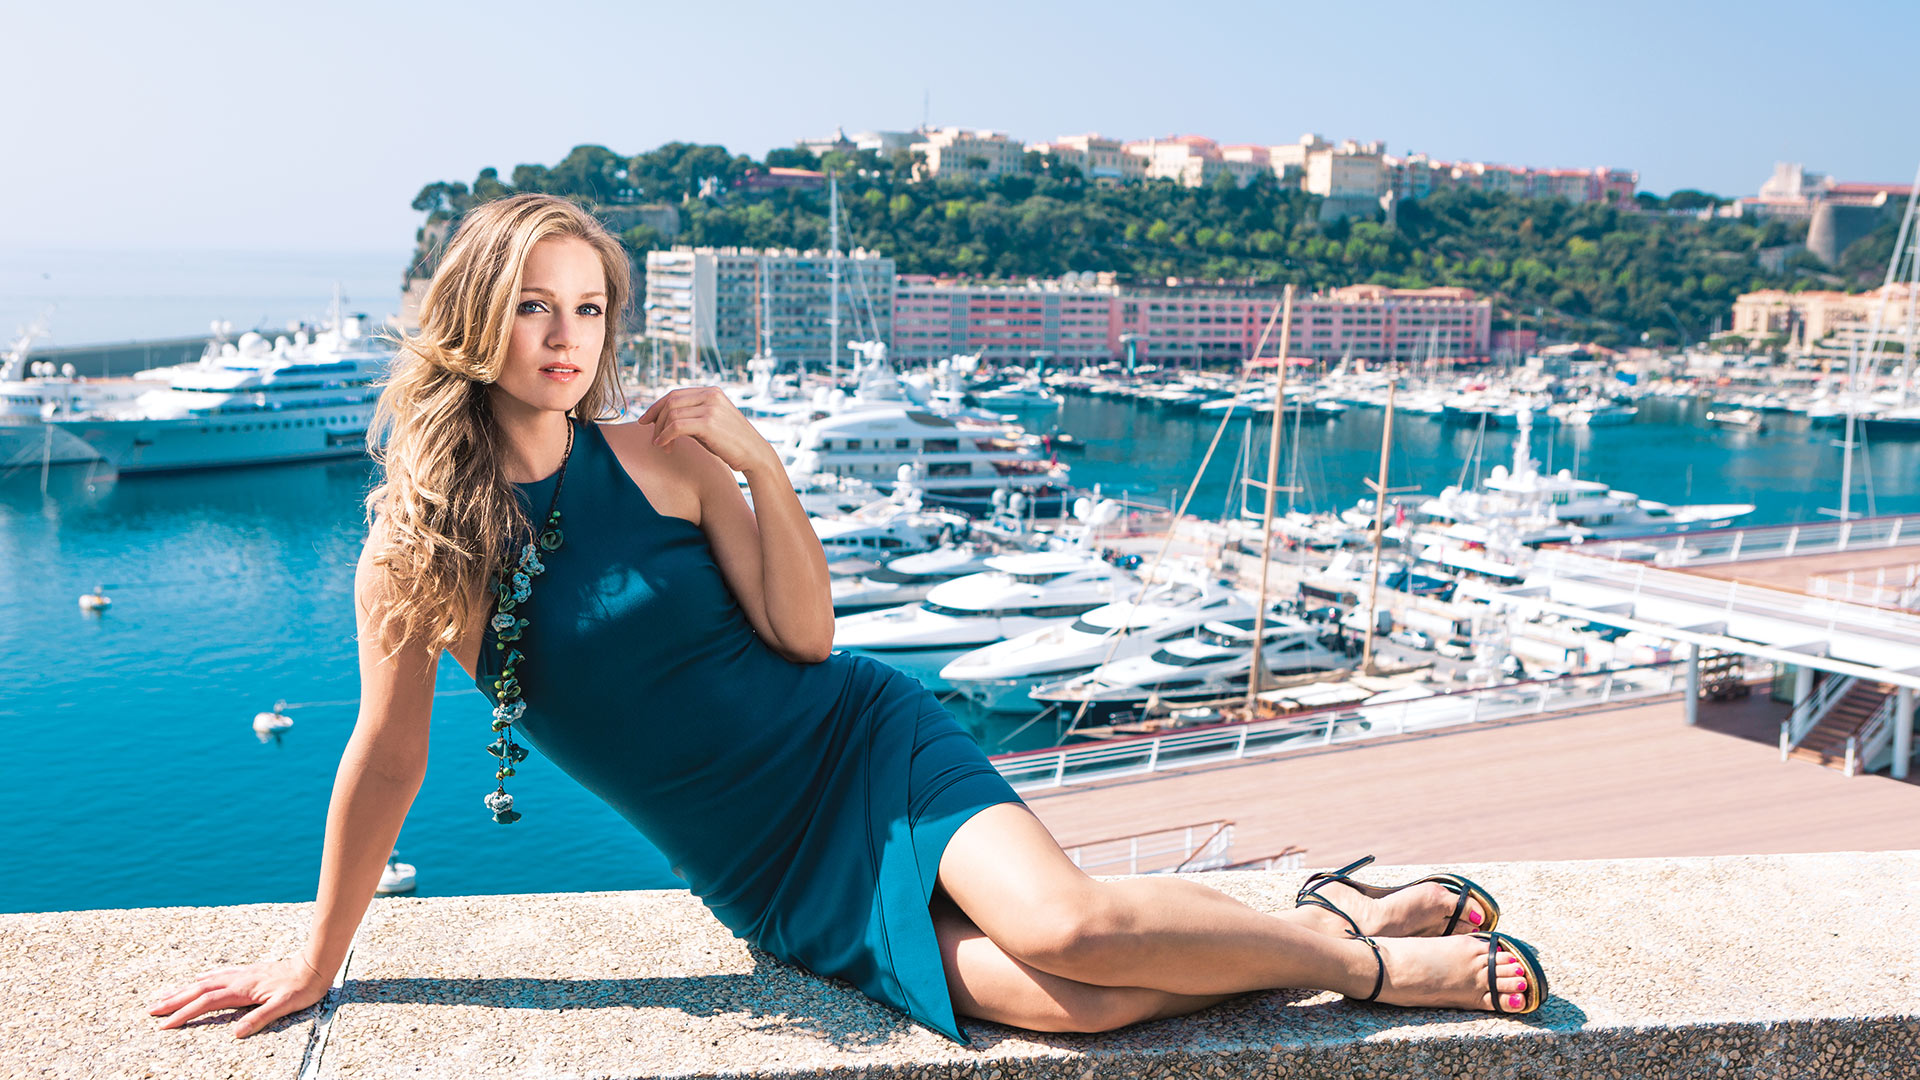 A.J. Cook loves a marina view